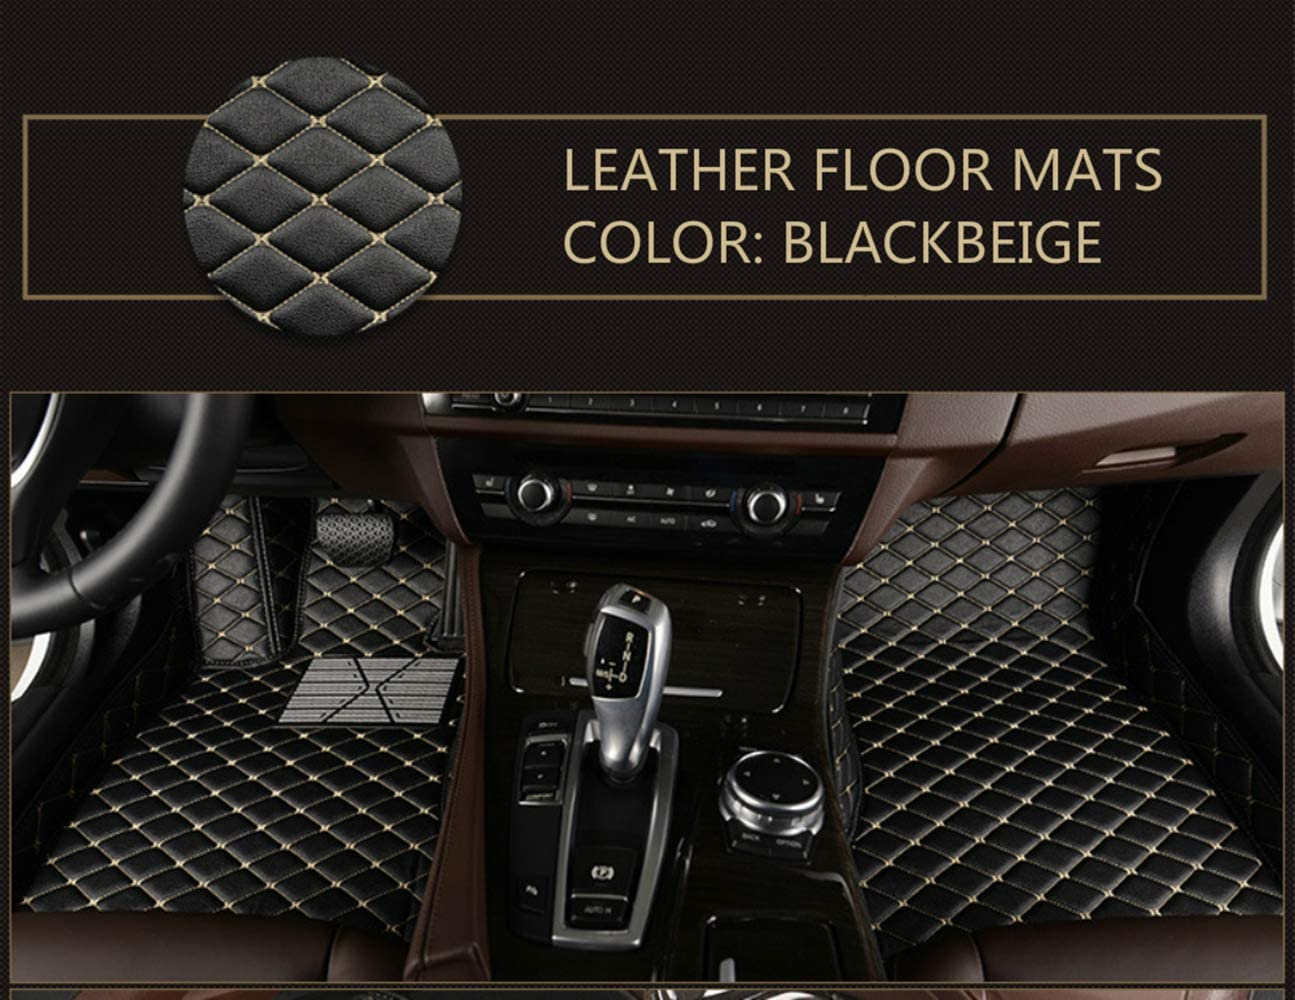 Custom Car Floor Mats for Toyota Venza 2009-2017 Full Surrounded Waterproof Anti-Slip All Weather Protection Leather Material Car mat Carpet Liners Interior Accessories Black